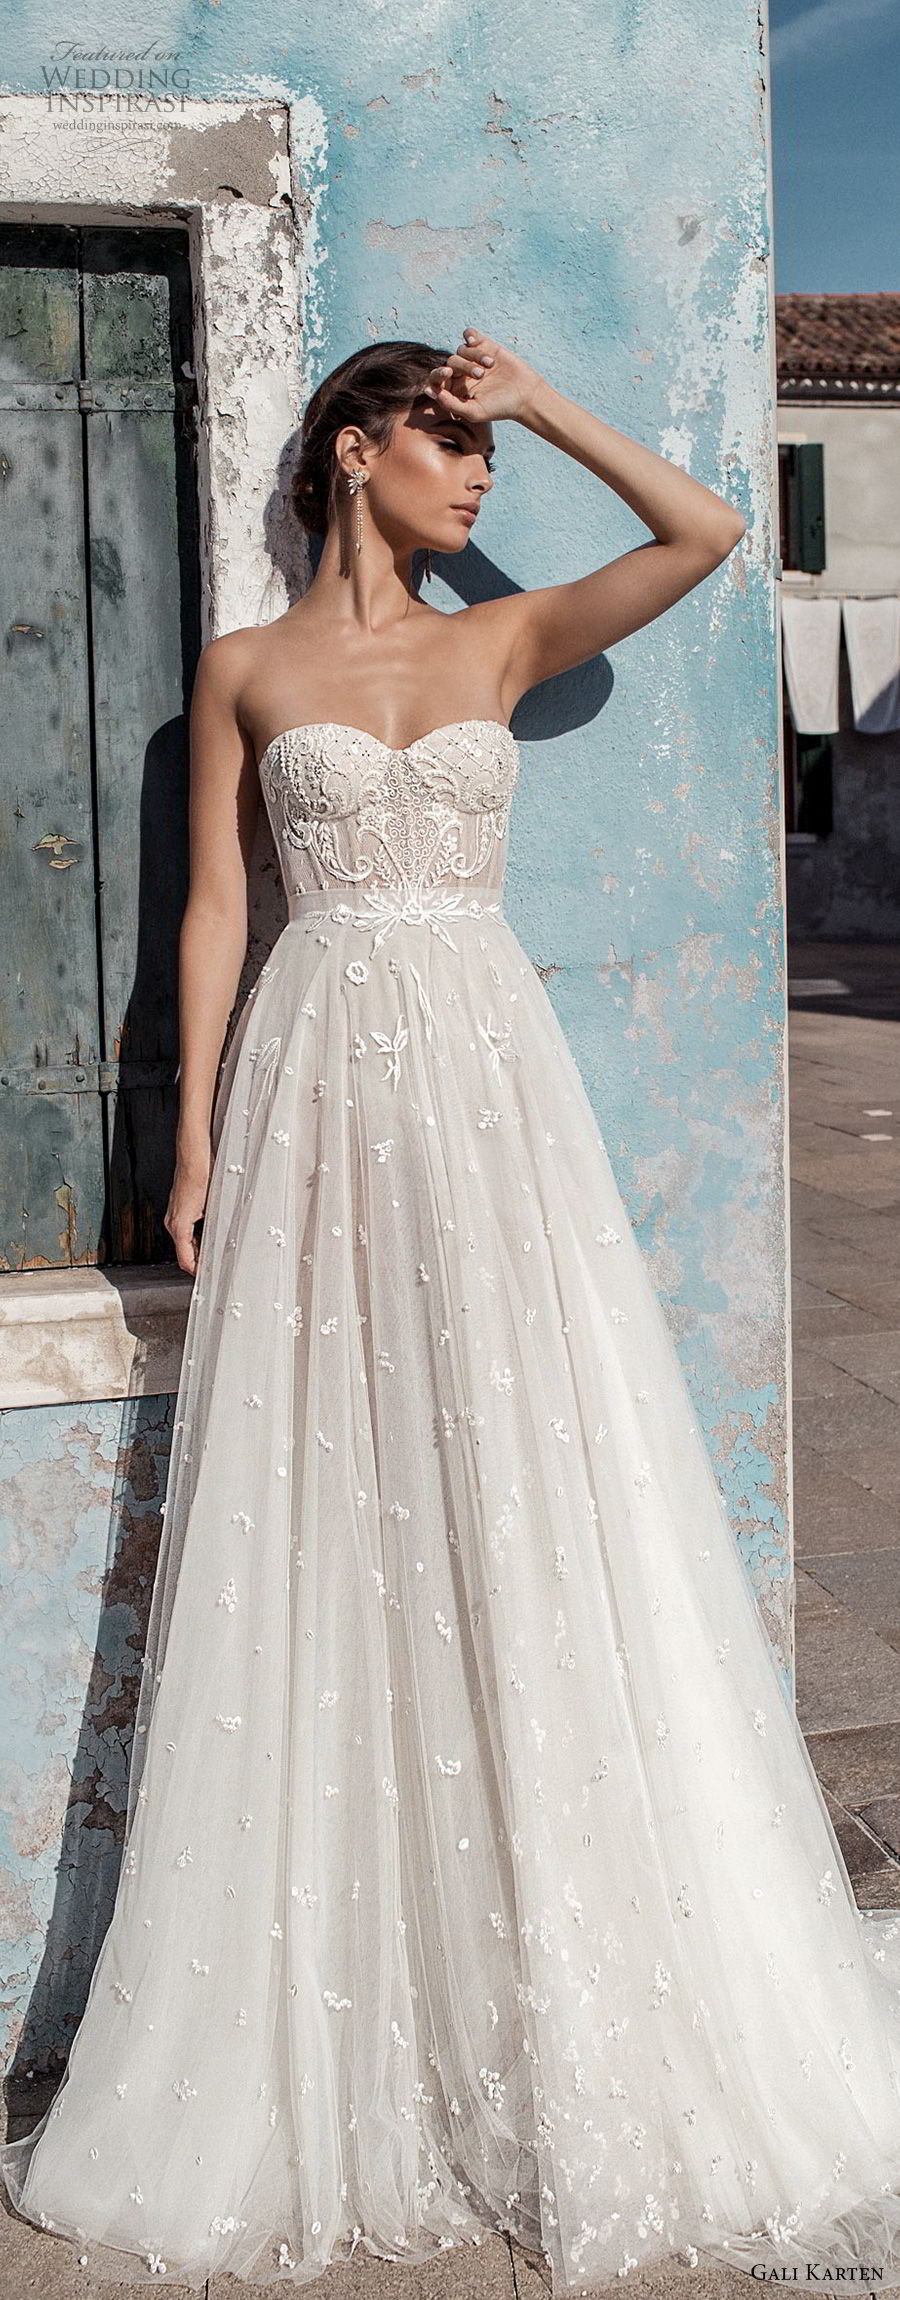 gali karten 2018 bridal strapless sweetheart neckline heavily embellished bodice bustier romantic soft a  line wedding dress medium train (3) mv